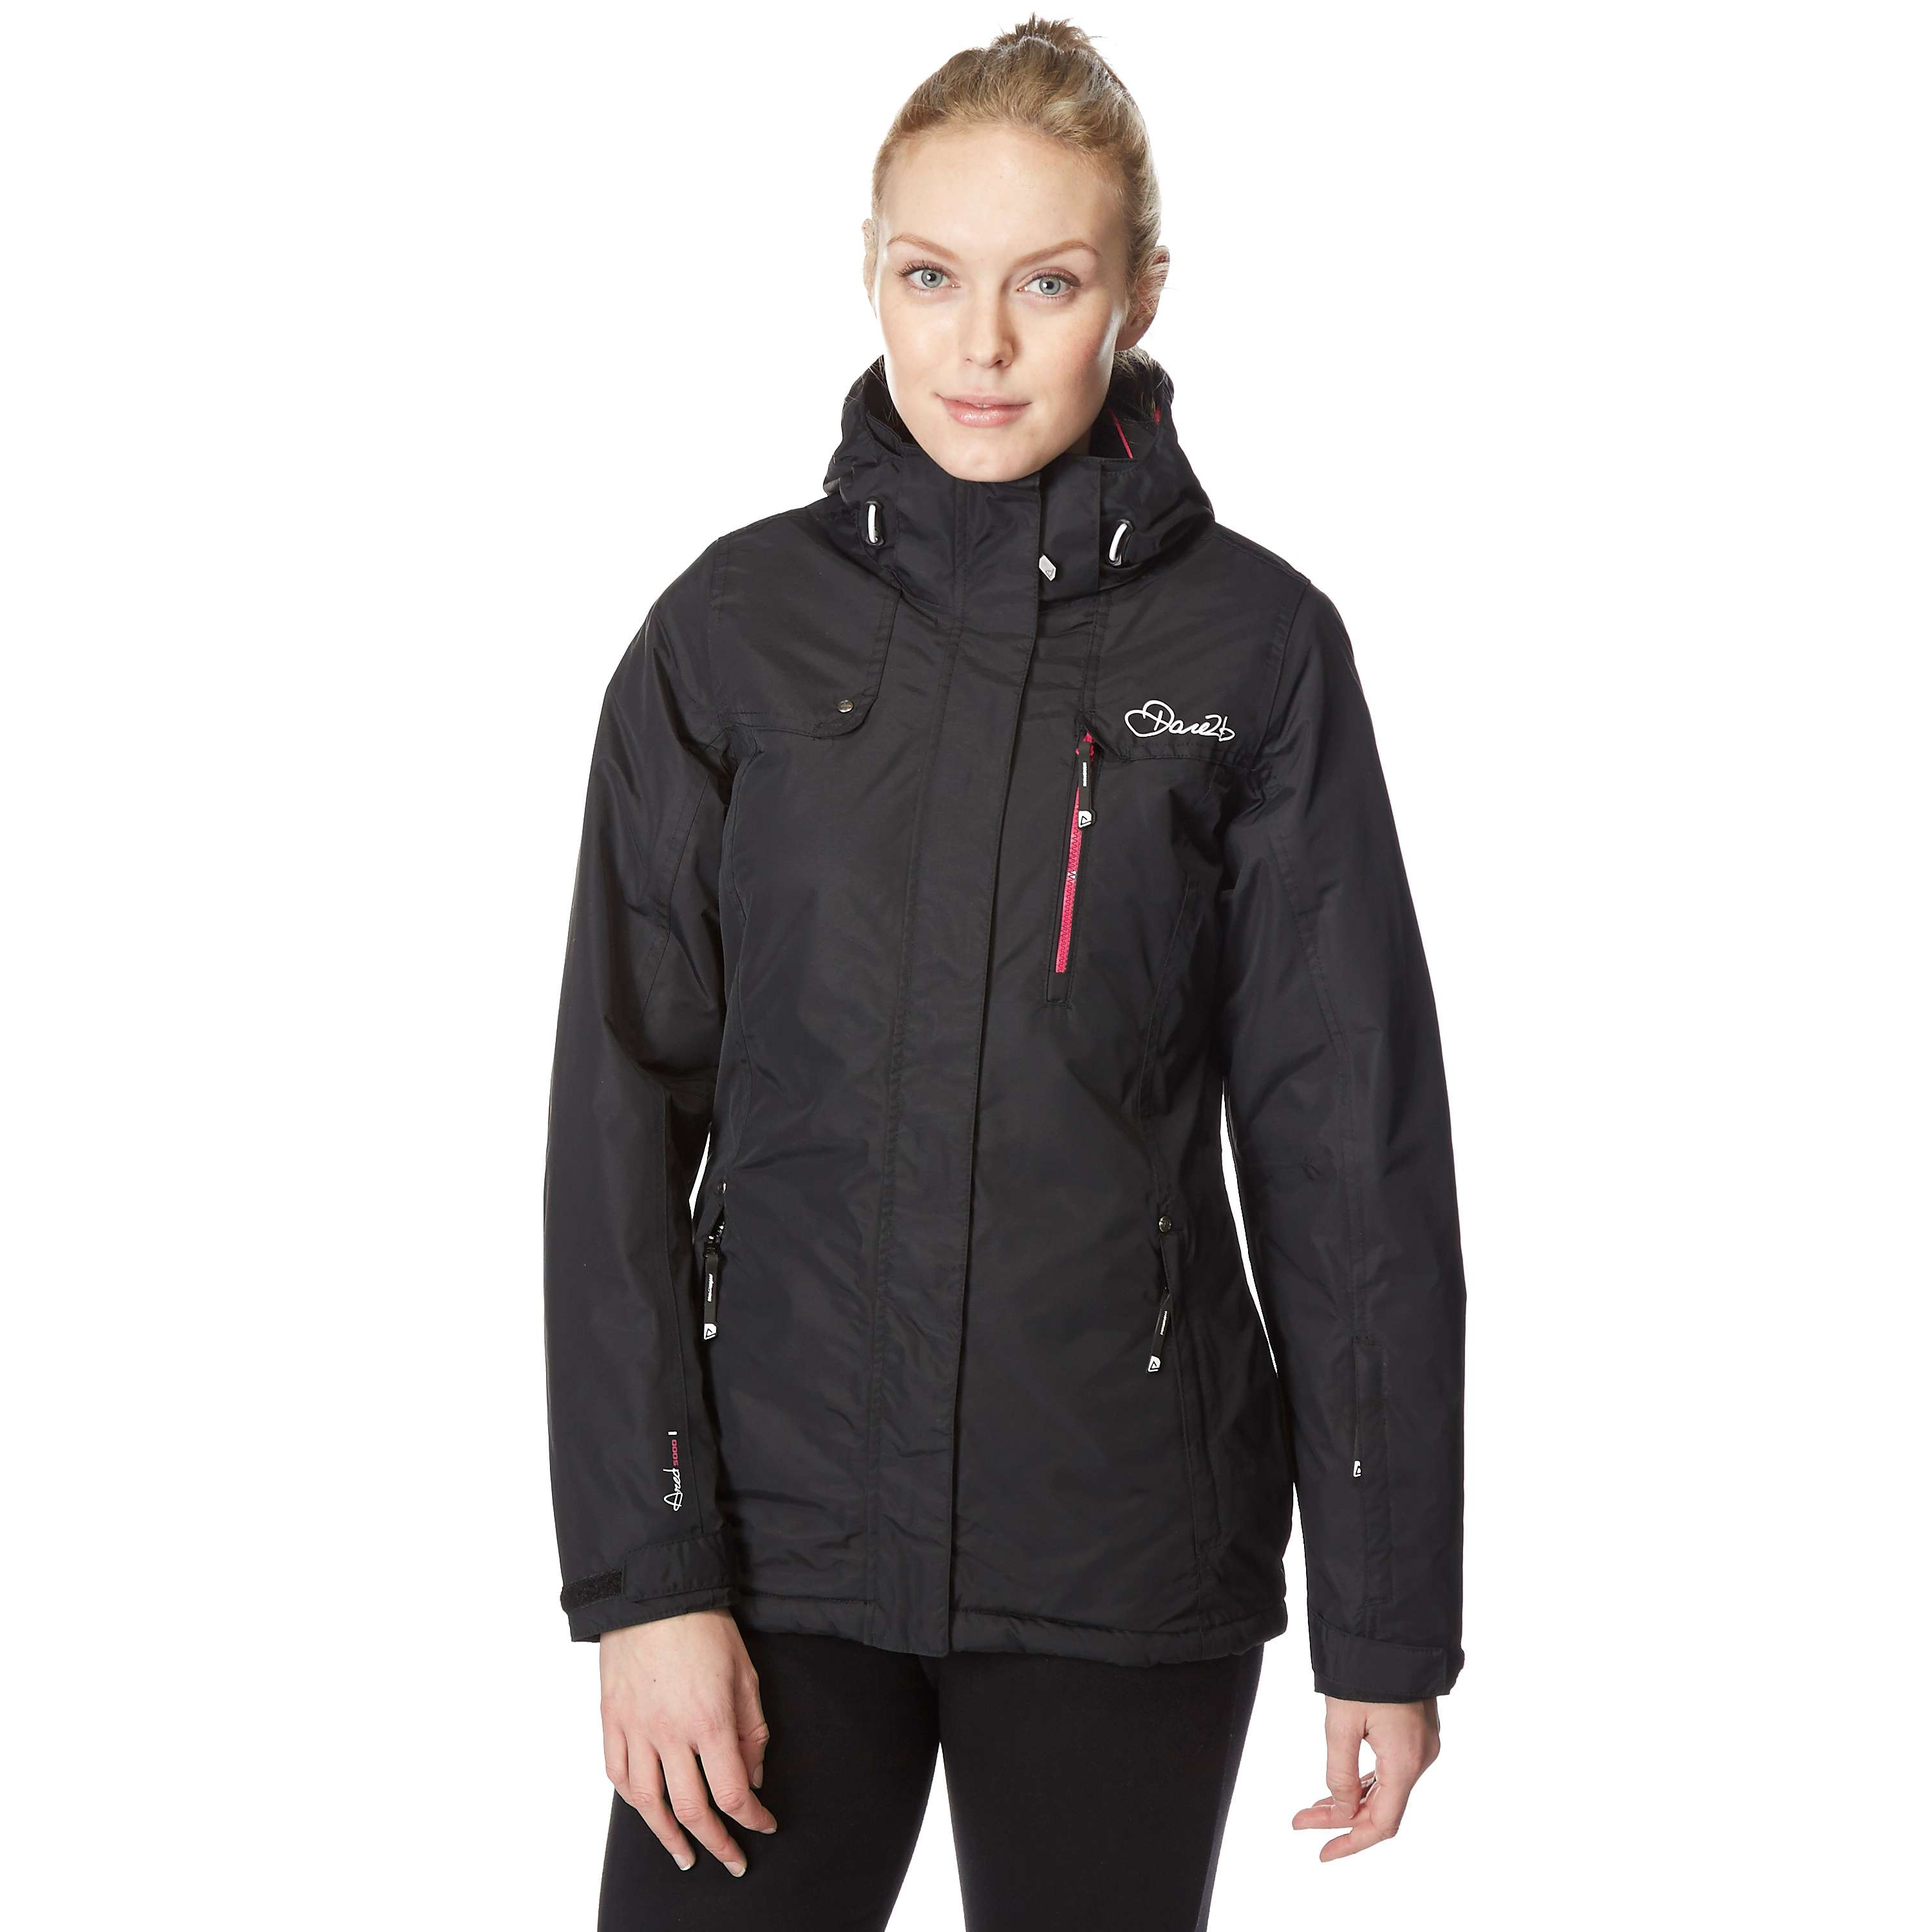 DARE 2B Women's Zestful Waterproof Ski Jacket